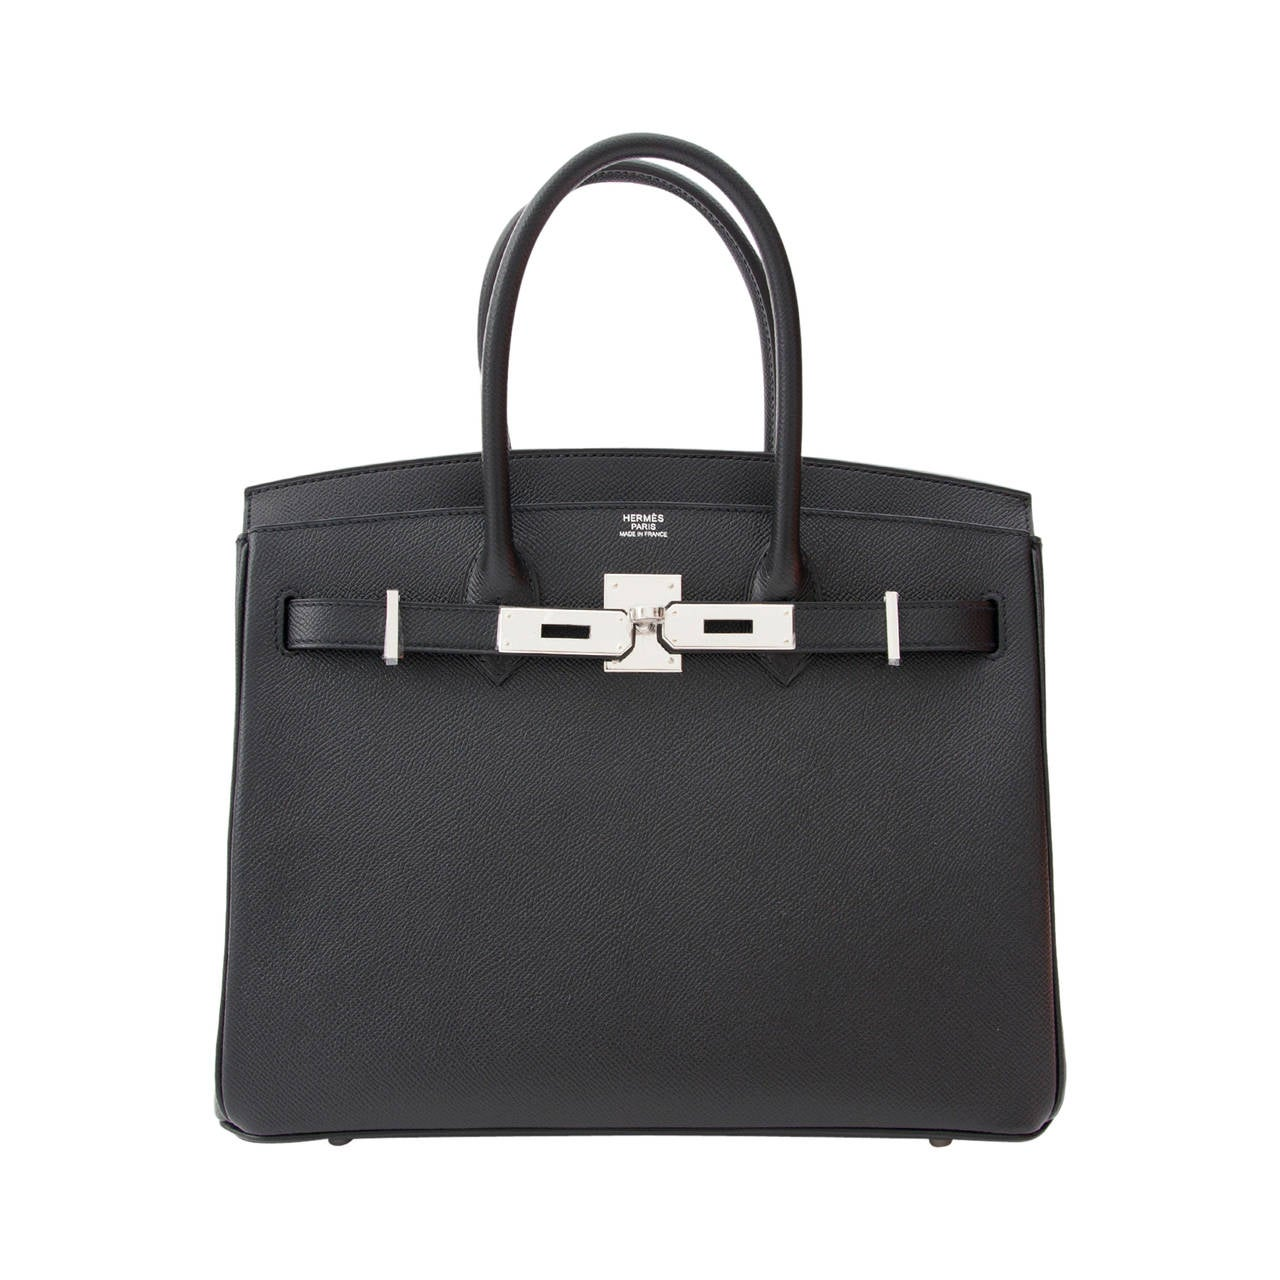 557c1d64c94 Authentic NEW Hermès Birkin Black epsom PHW 30 at 1stdibs